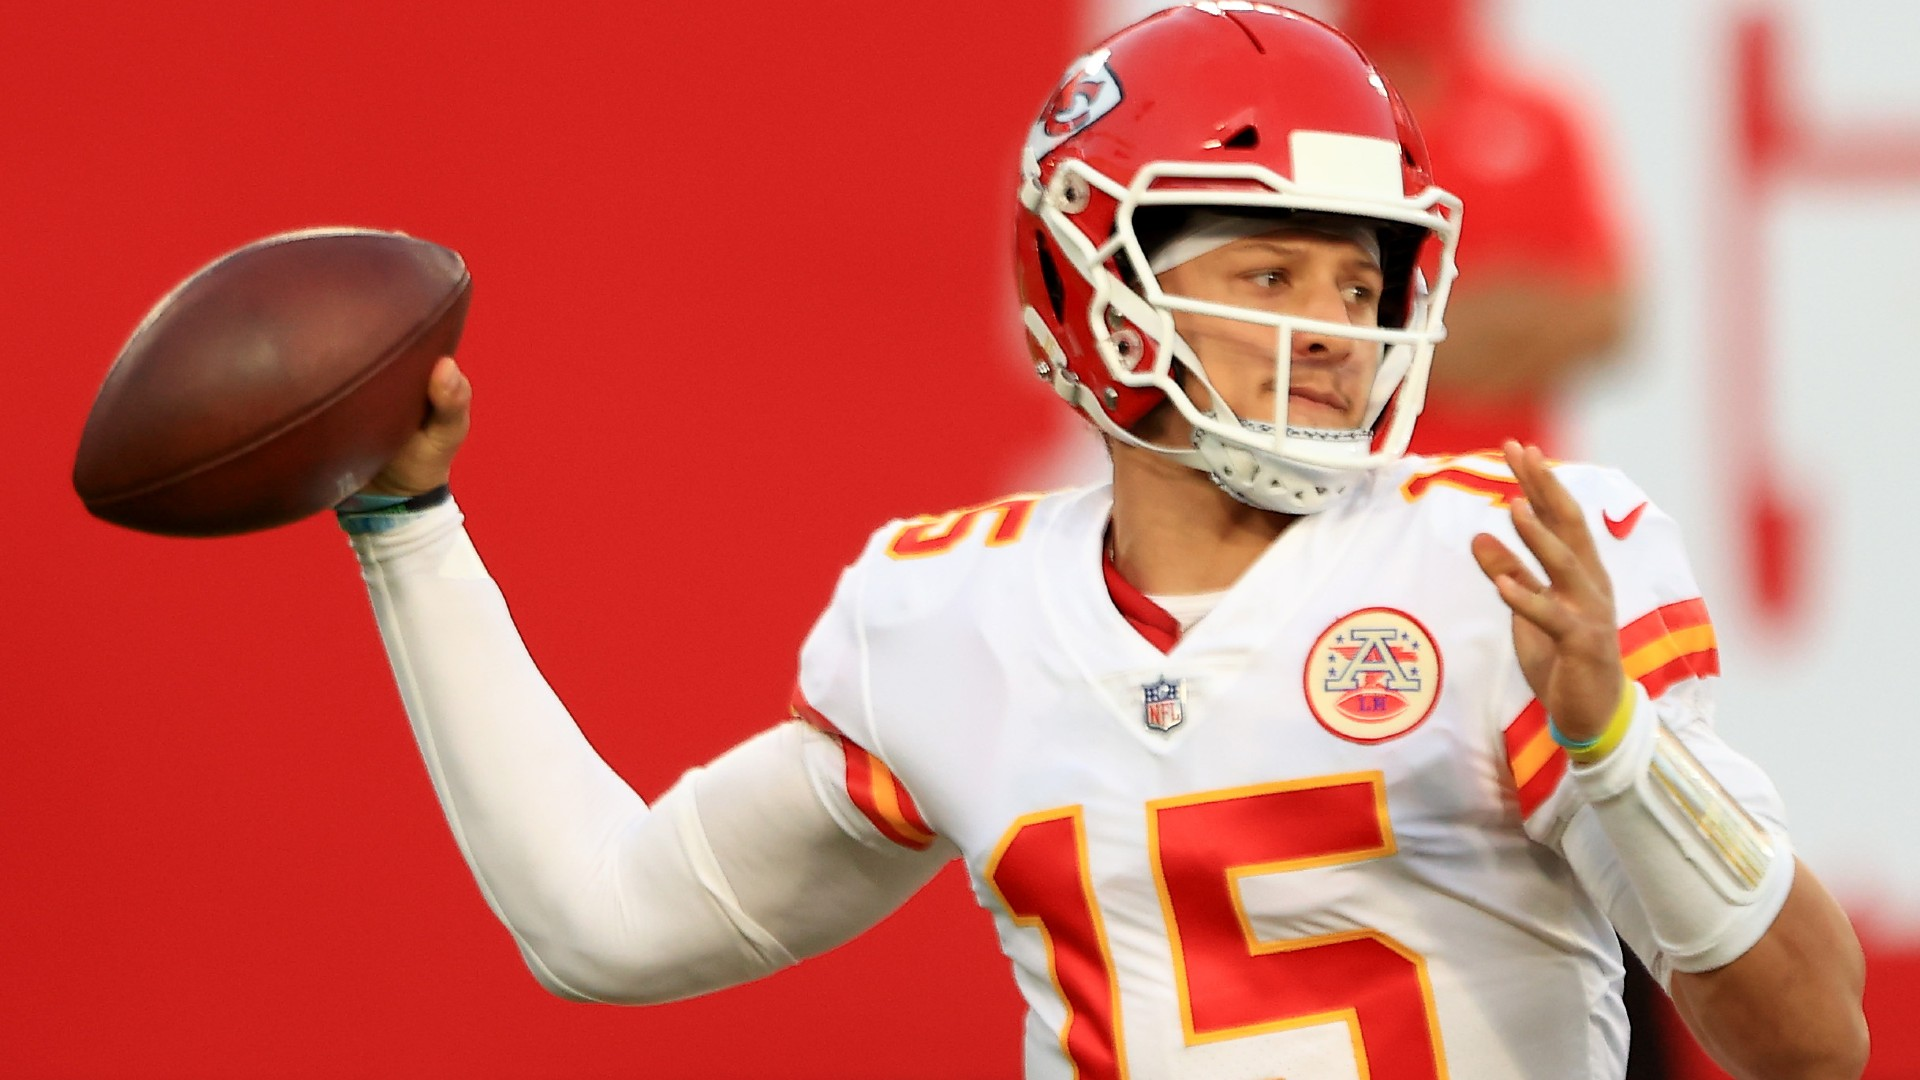 NFL playoff QB power rankings: Can Aaron Rodgers, anyone else dethrone Patrick Mahomes in 2021? 1